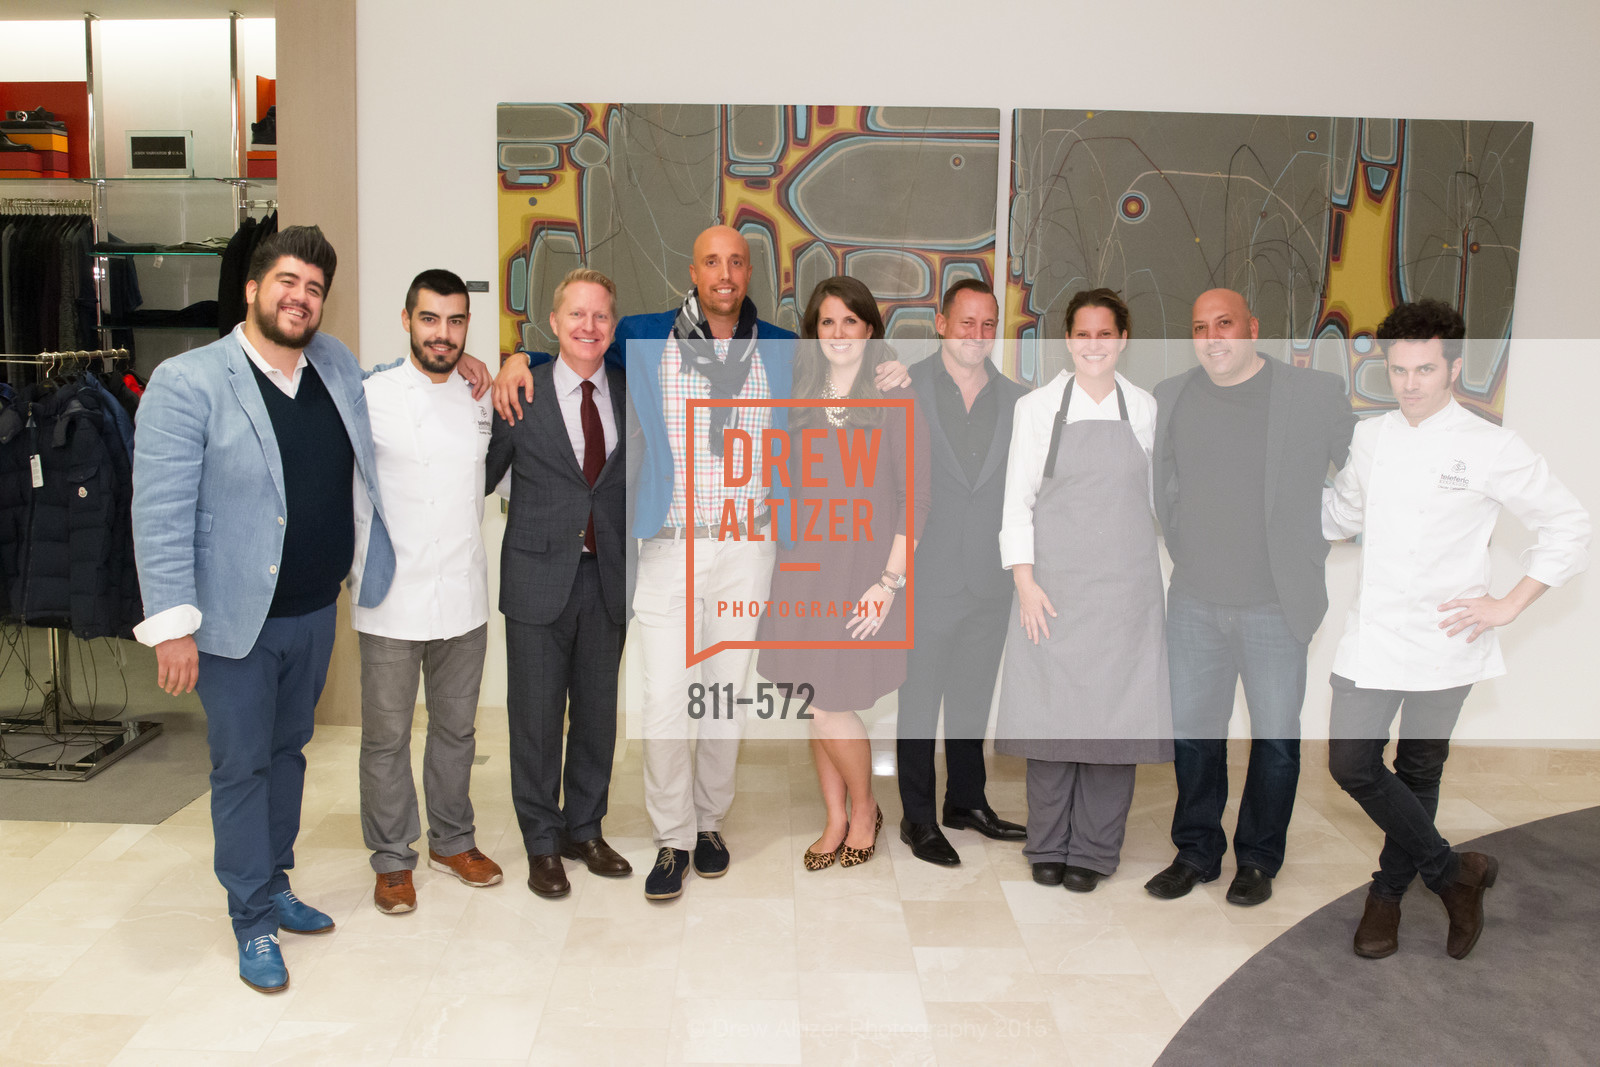 Paul Iglesias, Rodrigo Vasquez, Jamie Broadhurst, Xavi Padrosa, Meghan Murray, Jim Telford, Justine Kelly, Jeff Dudum, Oscar Cabezas, Neiman Marcus Walnut Creek welcomes neighbors ROOFTOP and Teleferic Barcelona, Neiman Marcus. 1000 South Main Street, November 20th, 2015